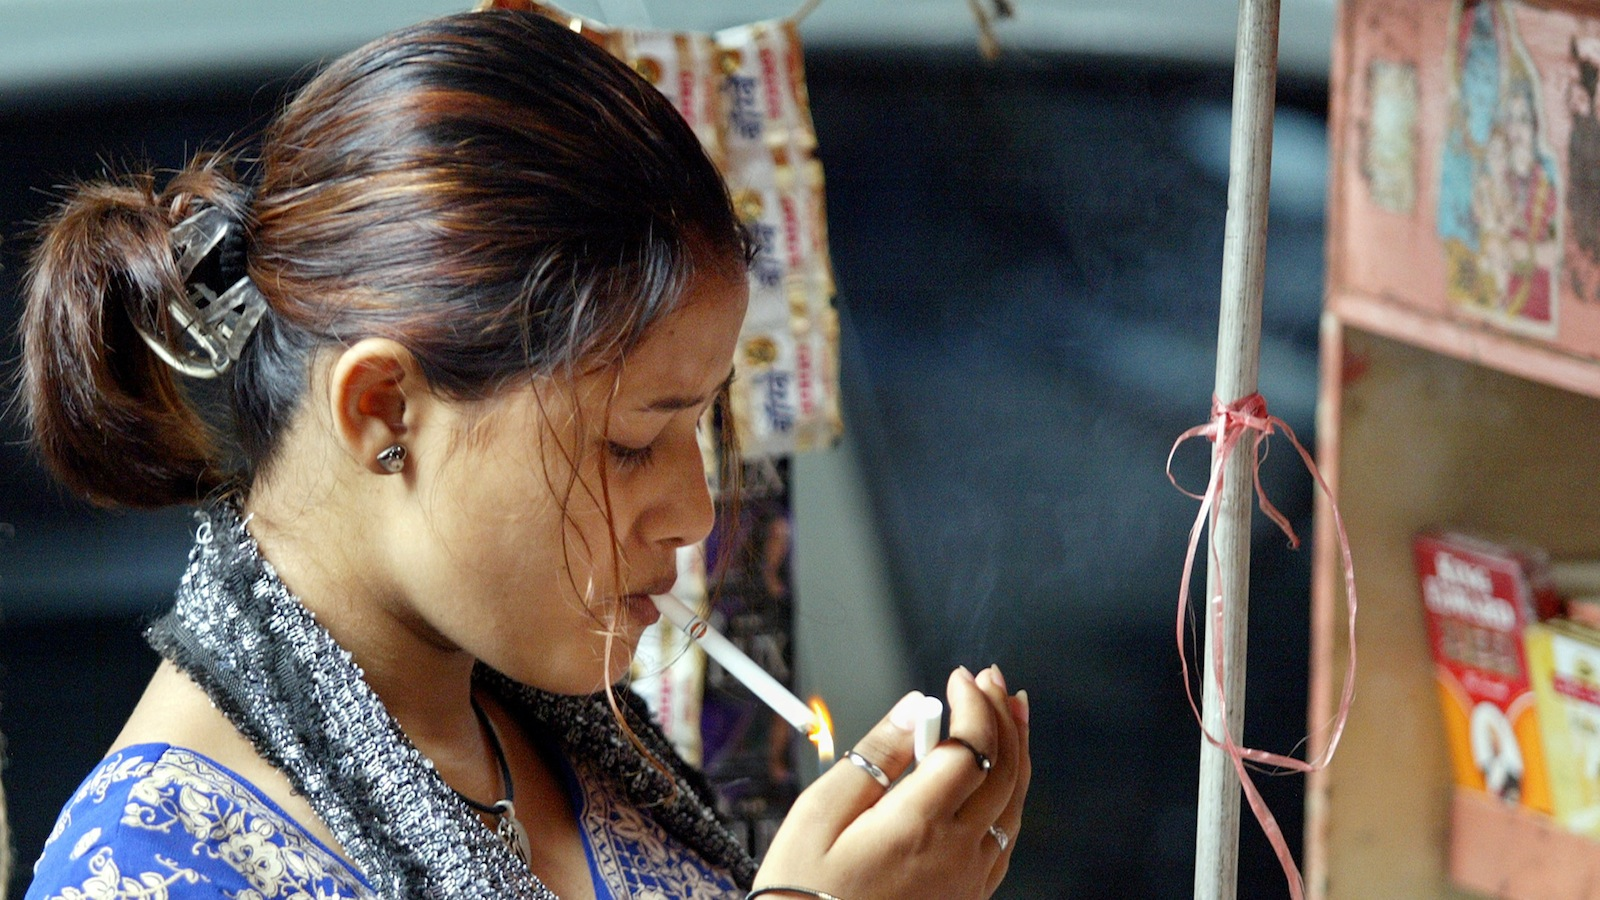 An Indian girl lights up a cigarette at a street side kiosk in Bombay May 7, 2004. In one of Asia's most polluted cities, most people fail to see the point of a ban on smoking - but some are fuming. The Indian Tobacco Bill, which took effect on May 1, imposes a ban nationwide ban on smoking in public places, advertising of tobacco products in mass media - except at point of sale - and selling to anyone under the age of 18. Picture taken on May 7, 2004. FOR RELEASE WITH FEATURE INDIA TOBACCO BAN REUTERS/Arko Datta AH/